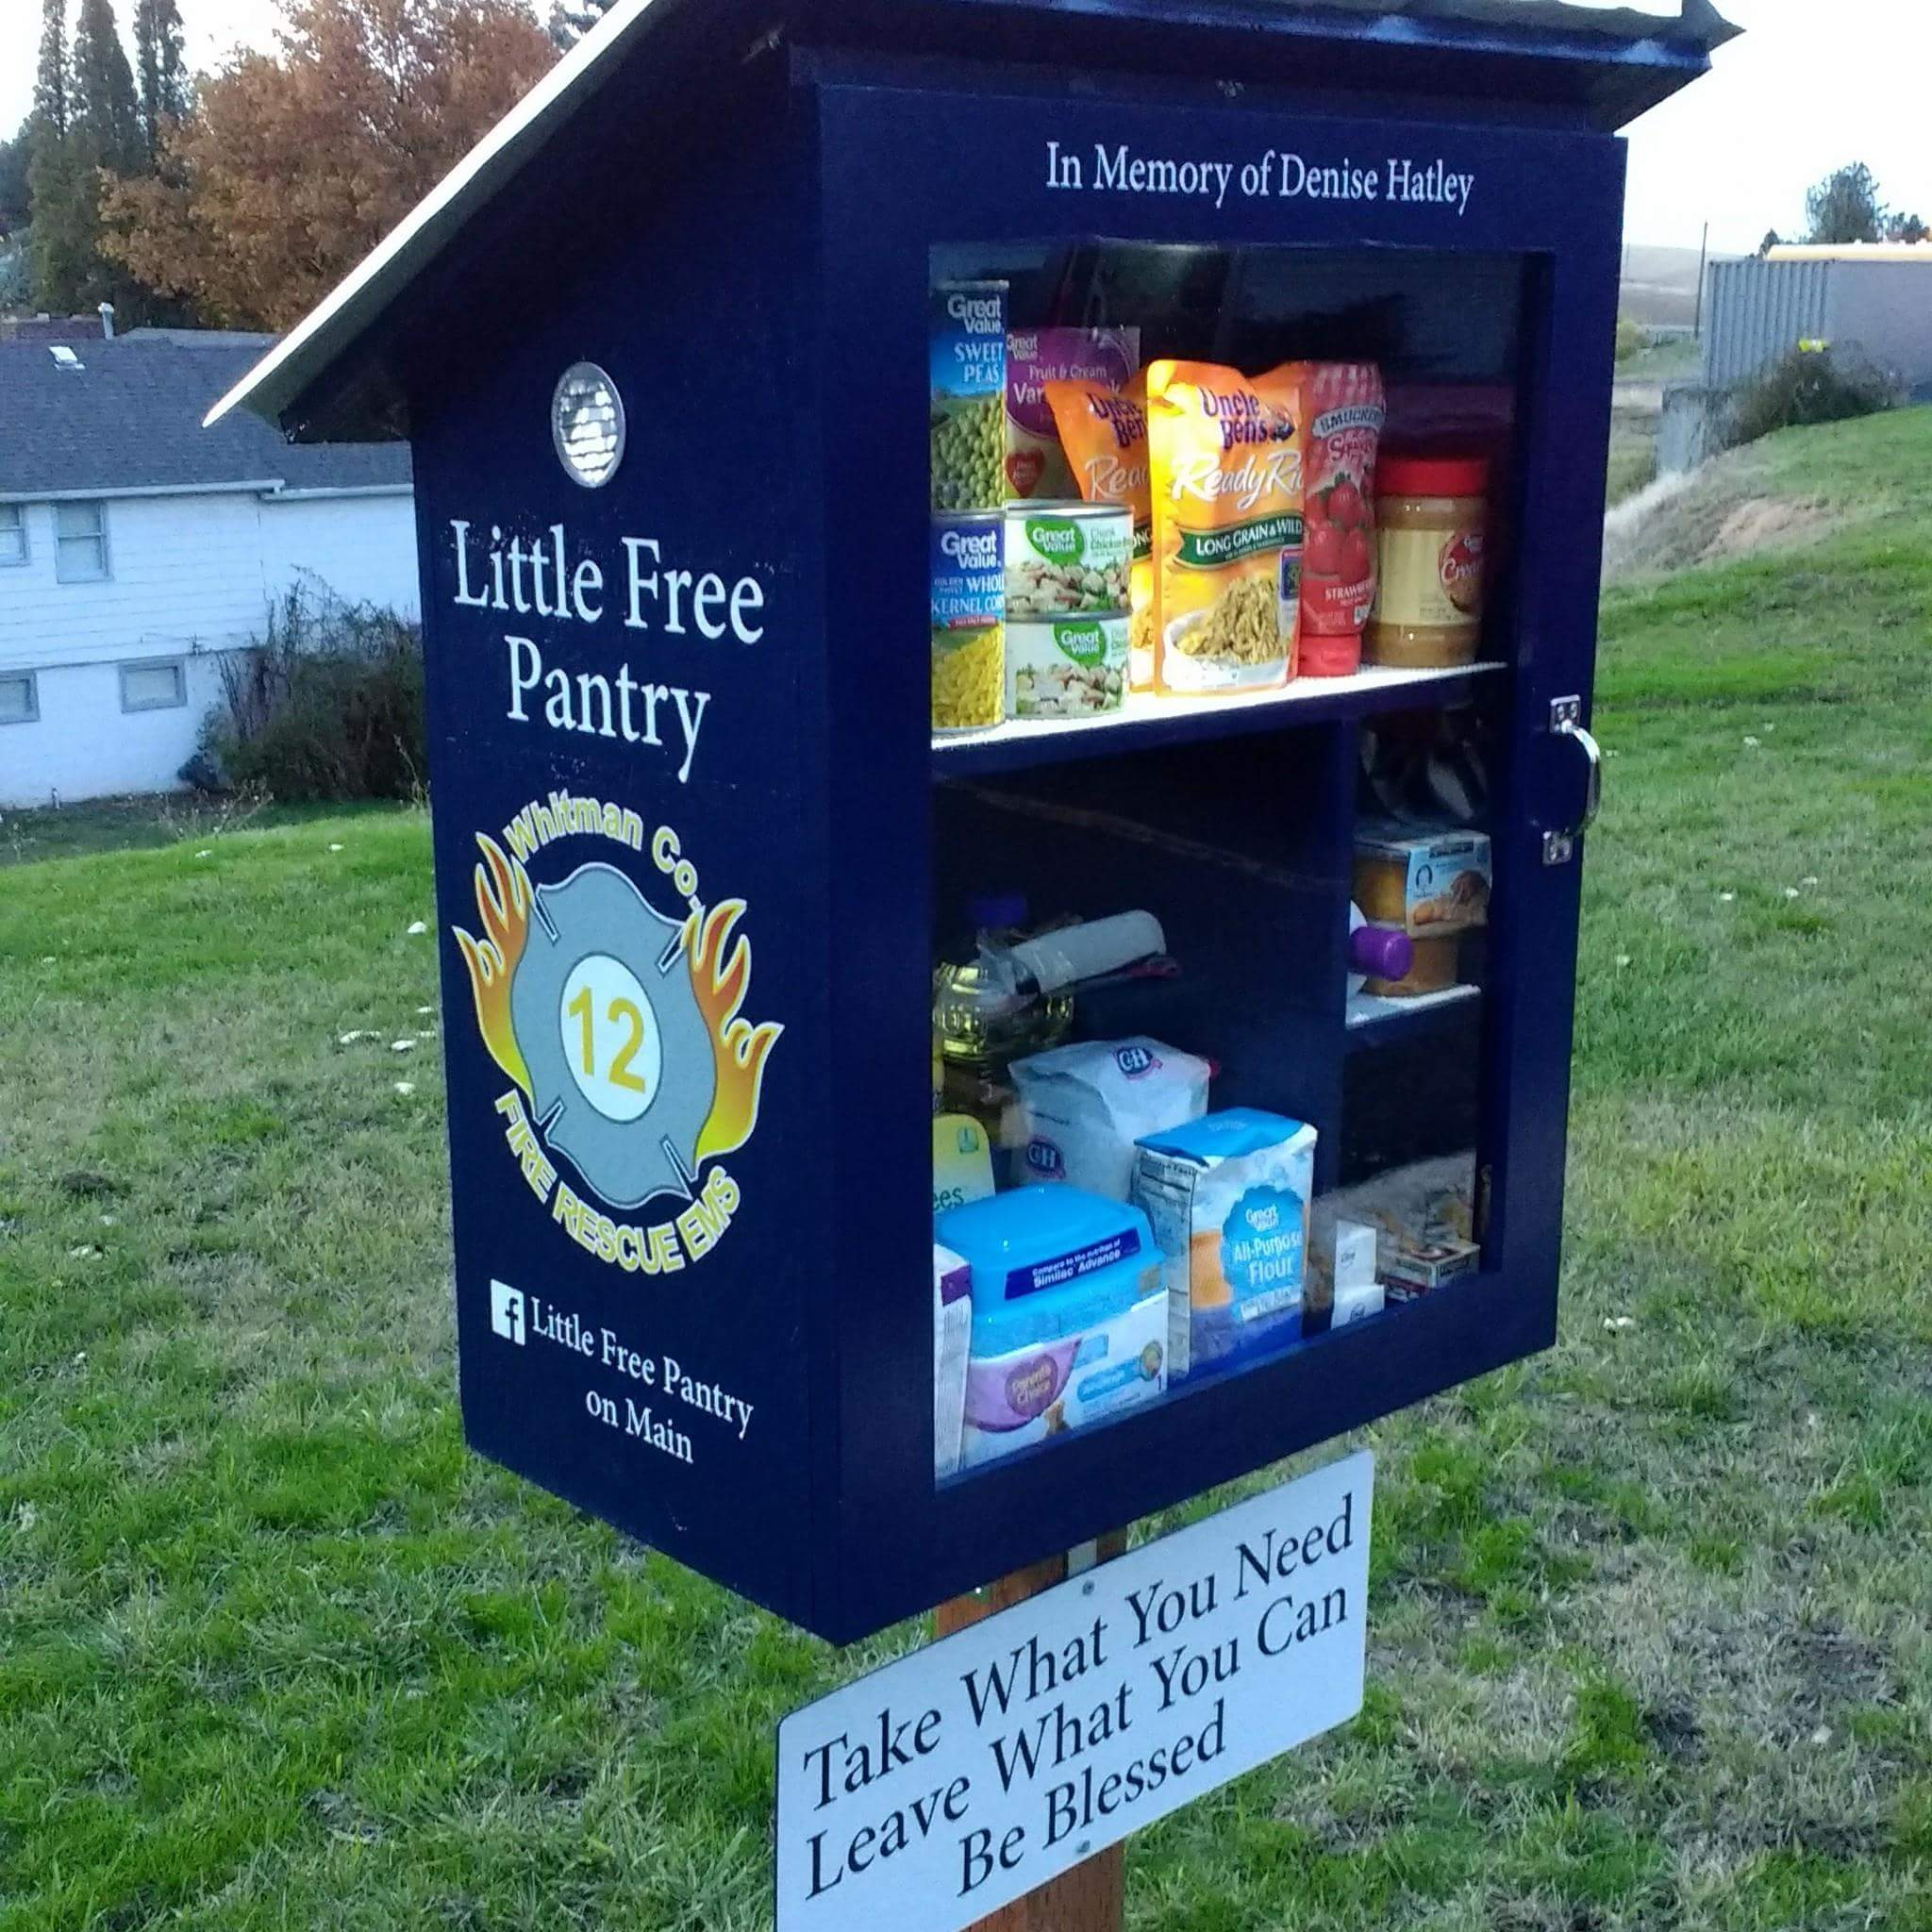 Little Free Pantry on Main Photo 1